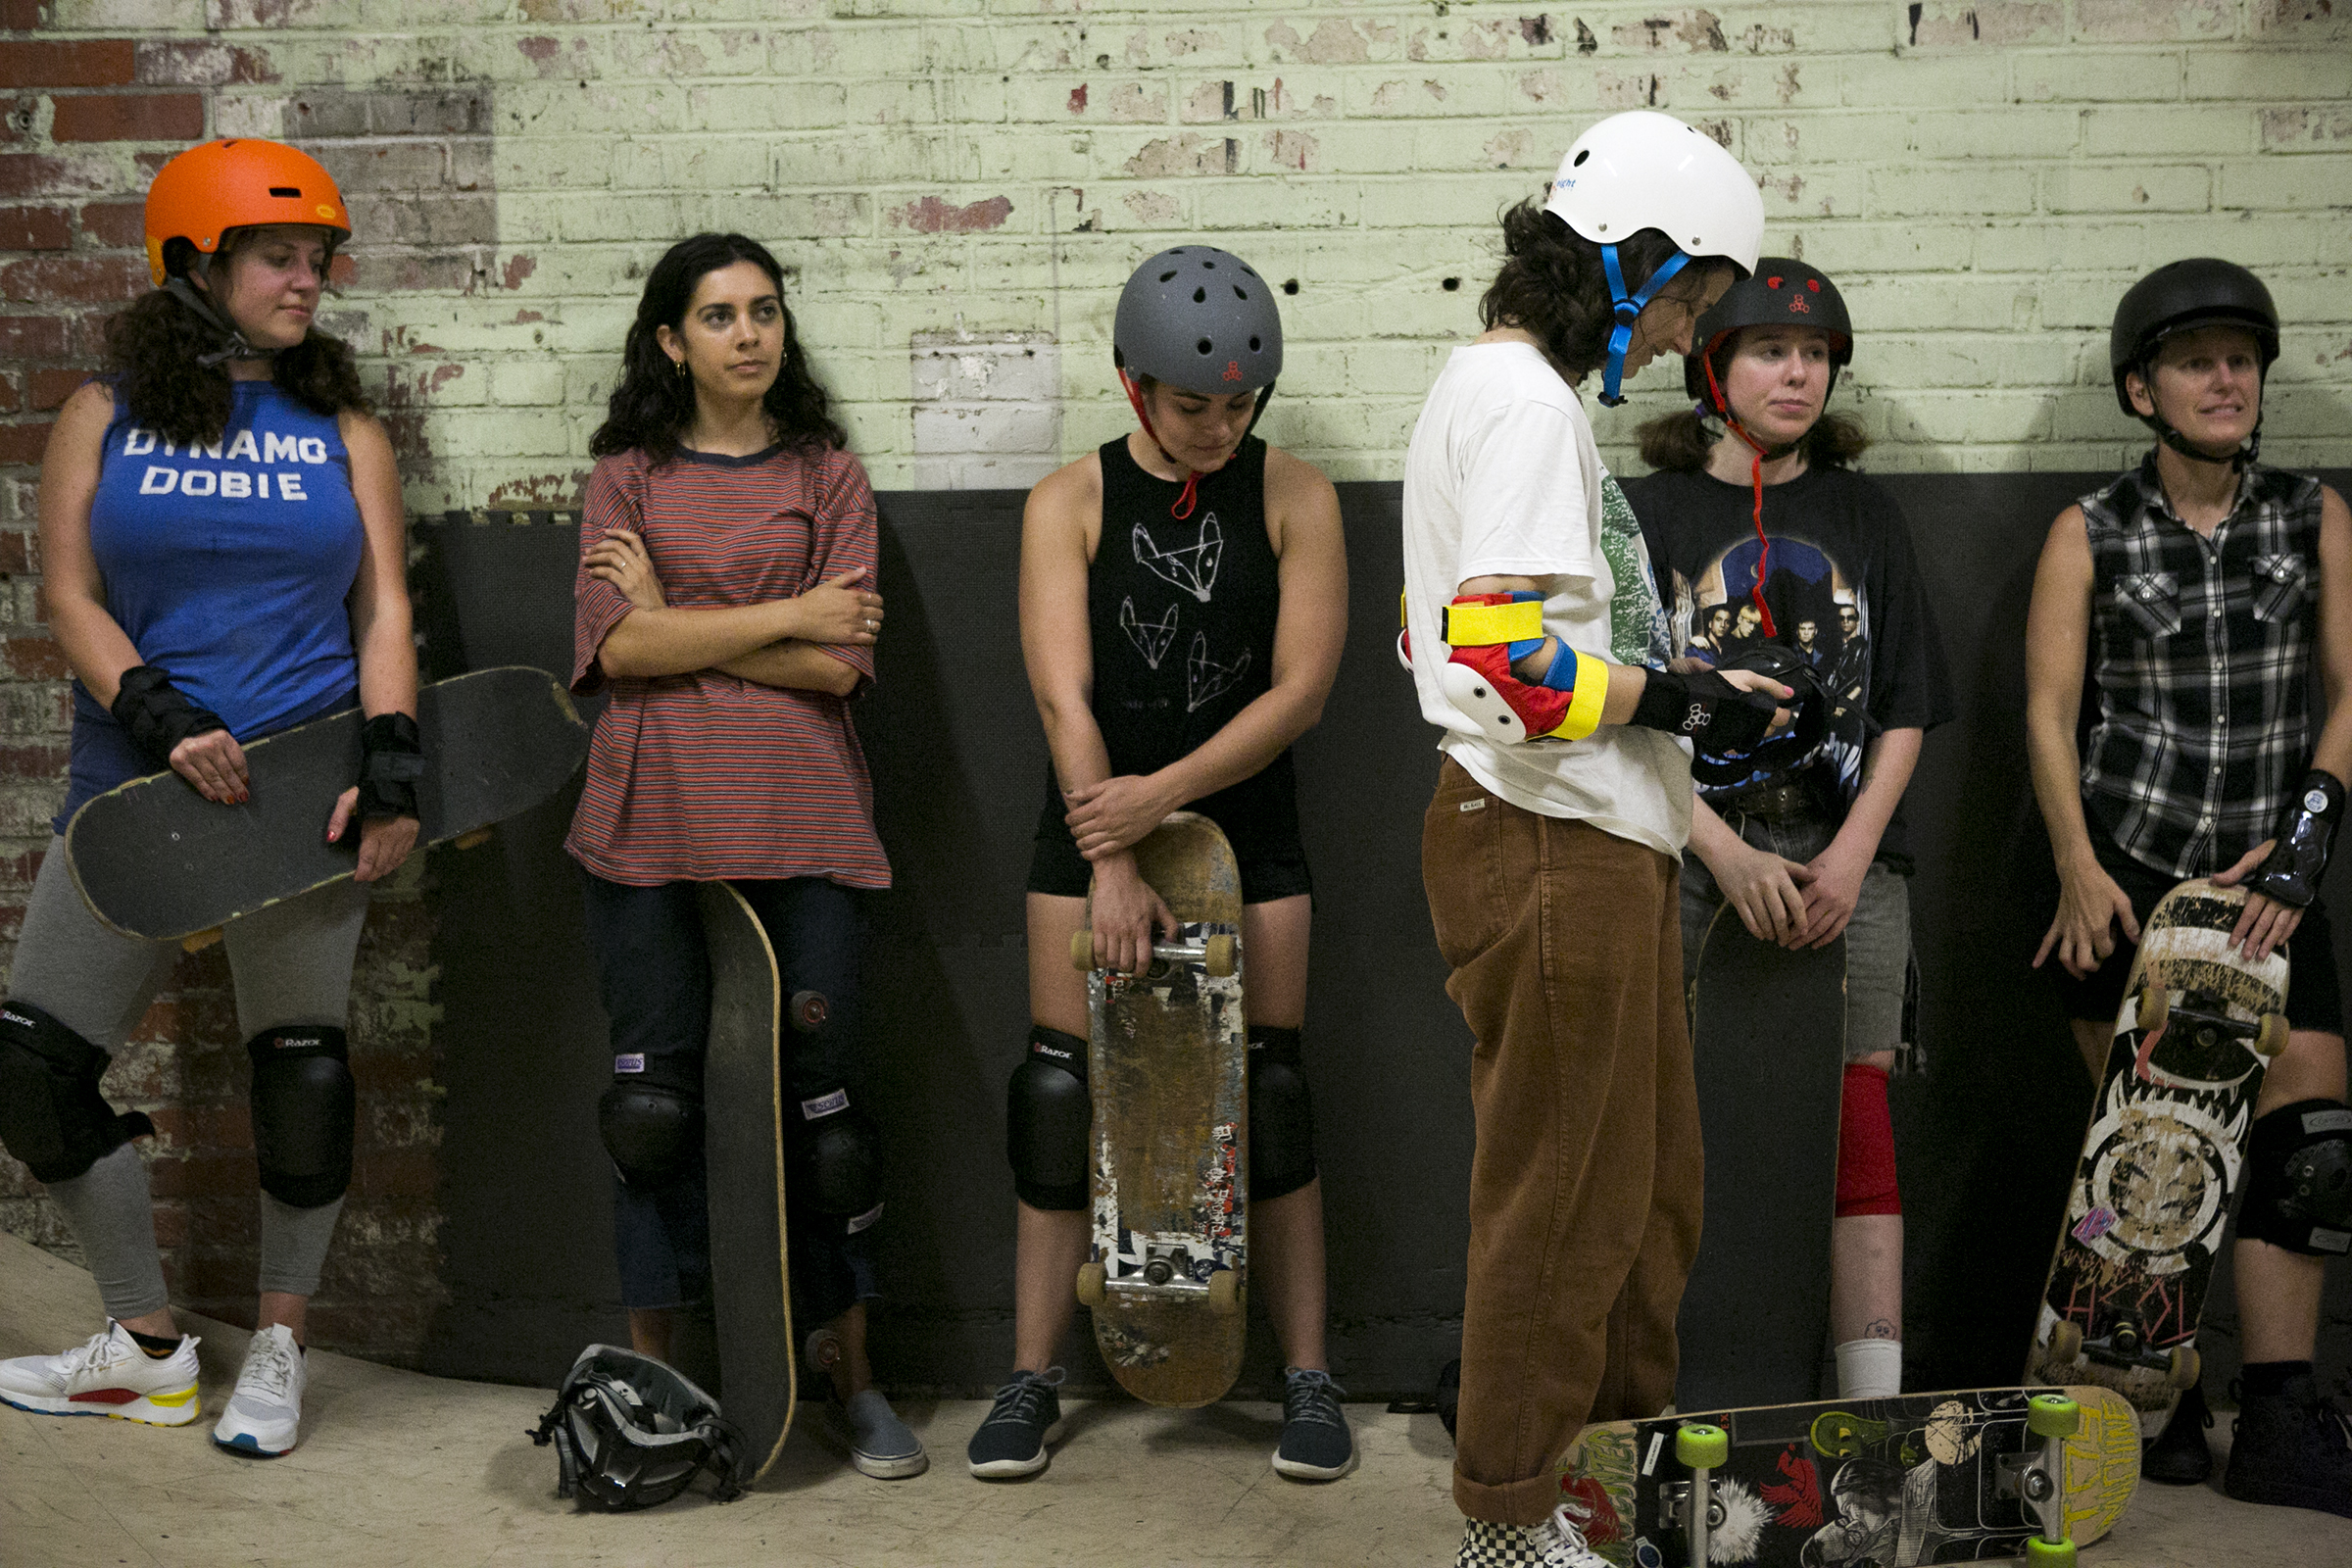 Adult skateboarding students wait for their turn on the halfpipe at Skate the Foundry on 40th Street on the morning of Saturday, August 11, 2018.